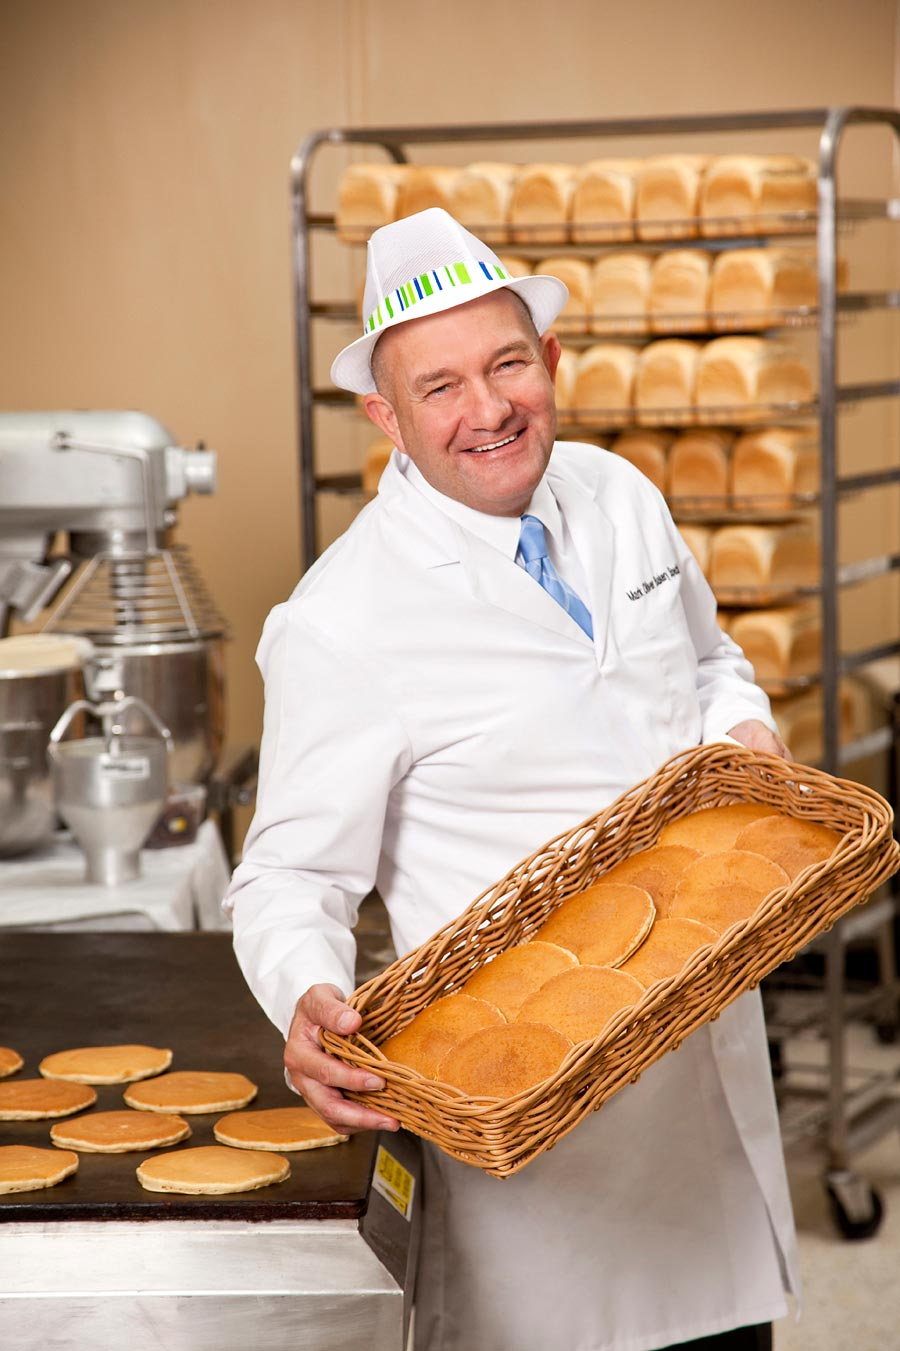 A portrait of a baker in a bakery setting.